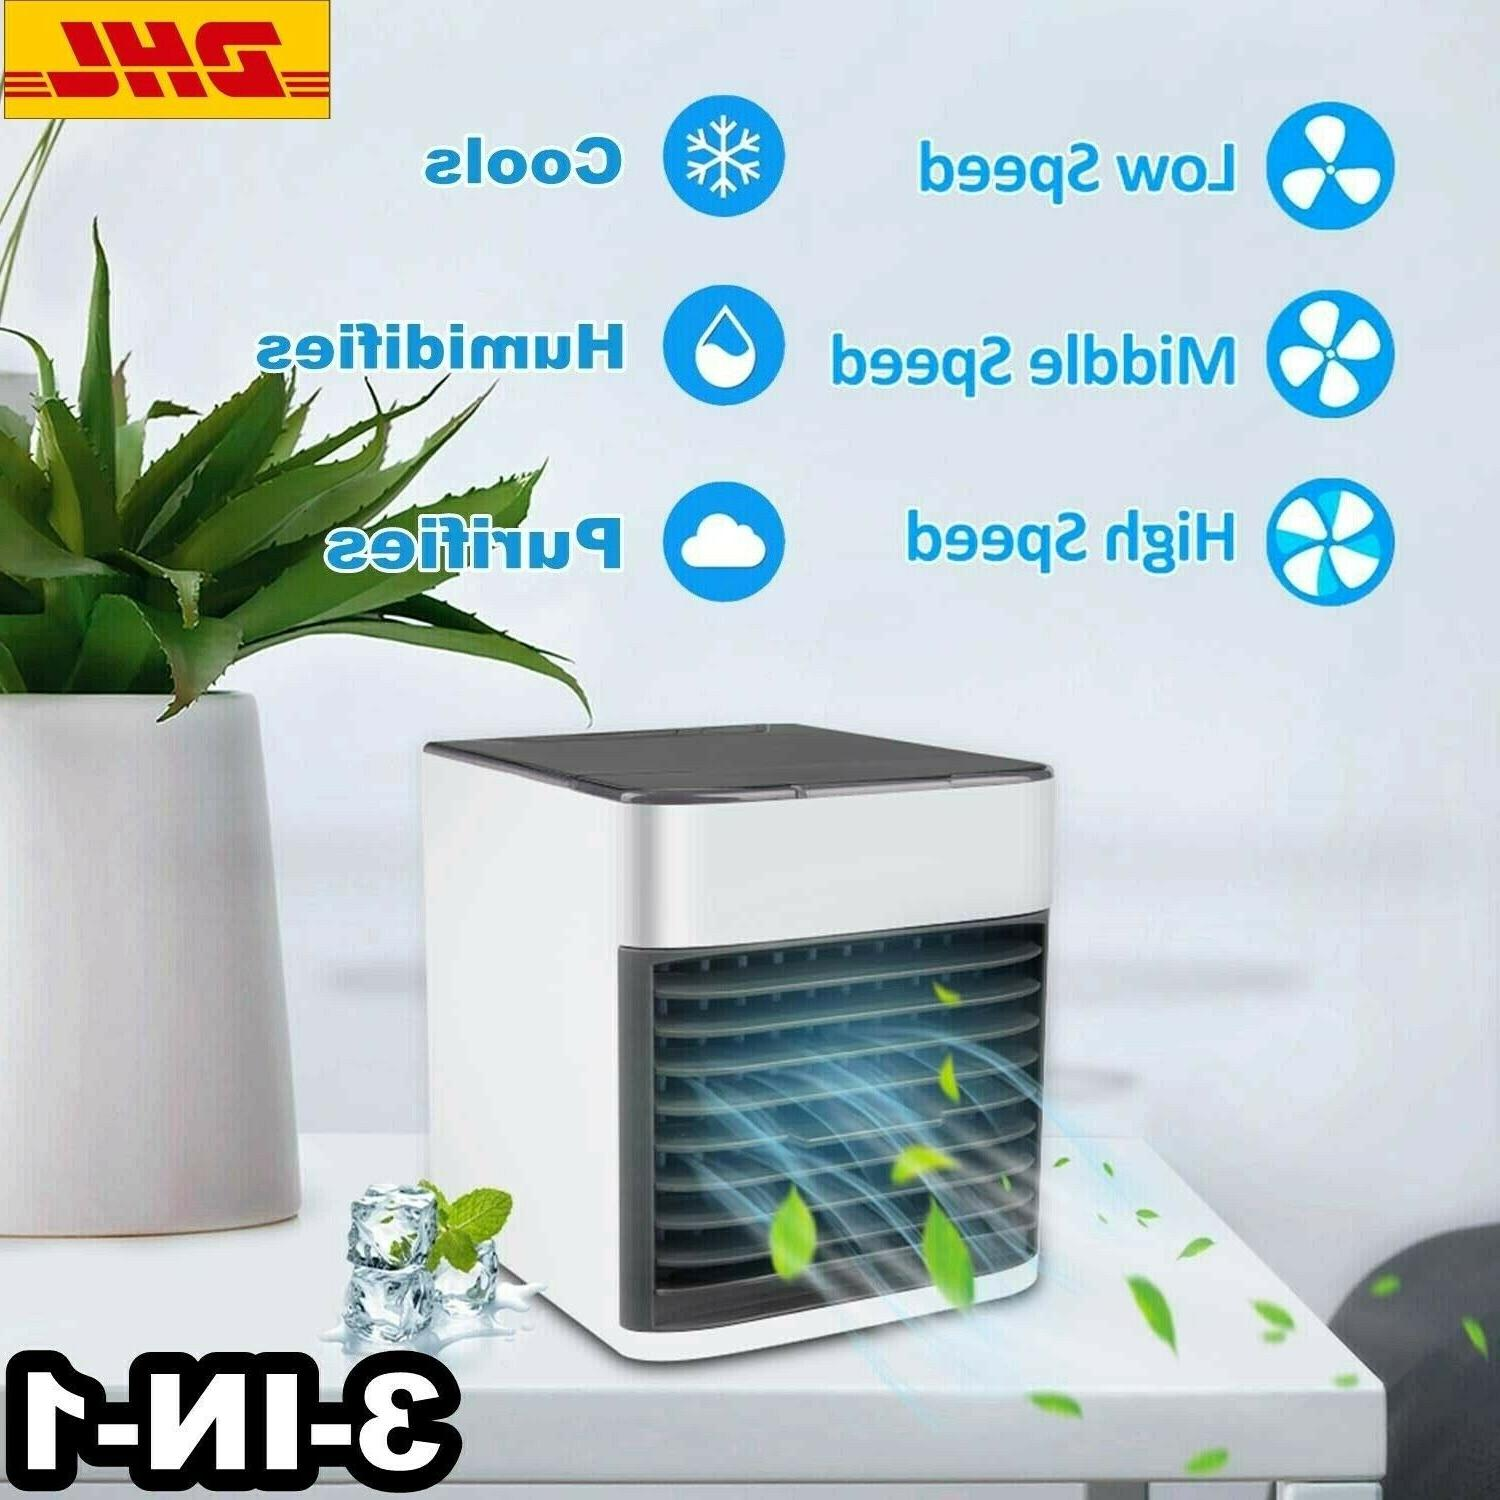 Portable Air Cooler 7 LED USB Window Cooler